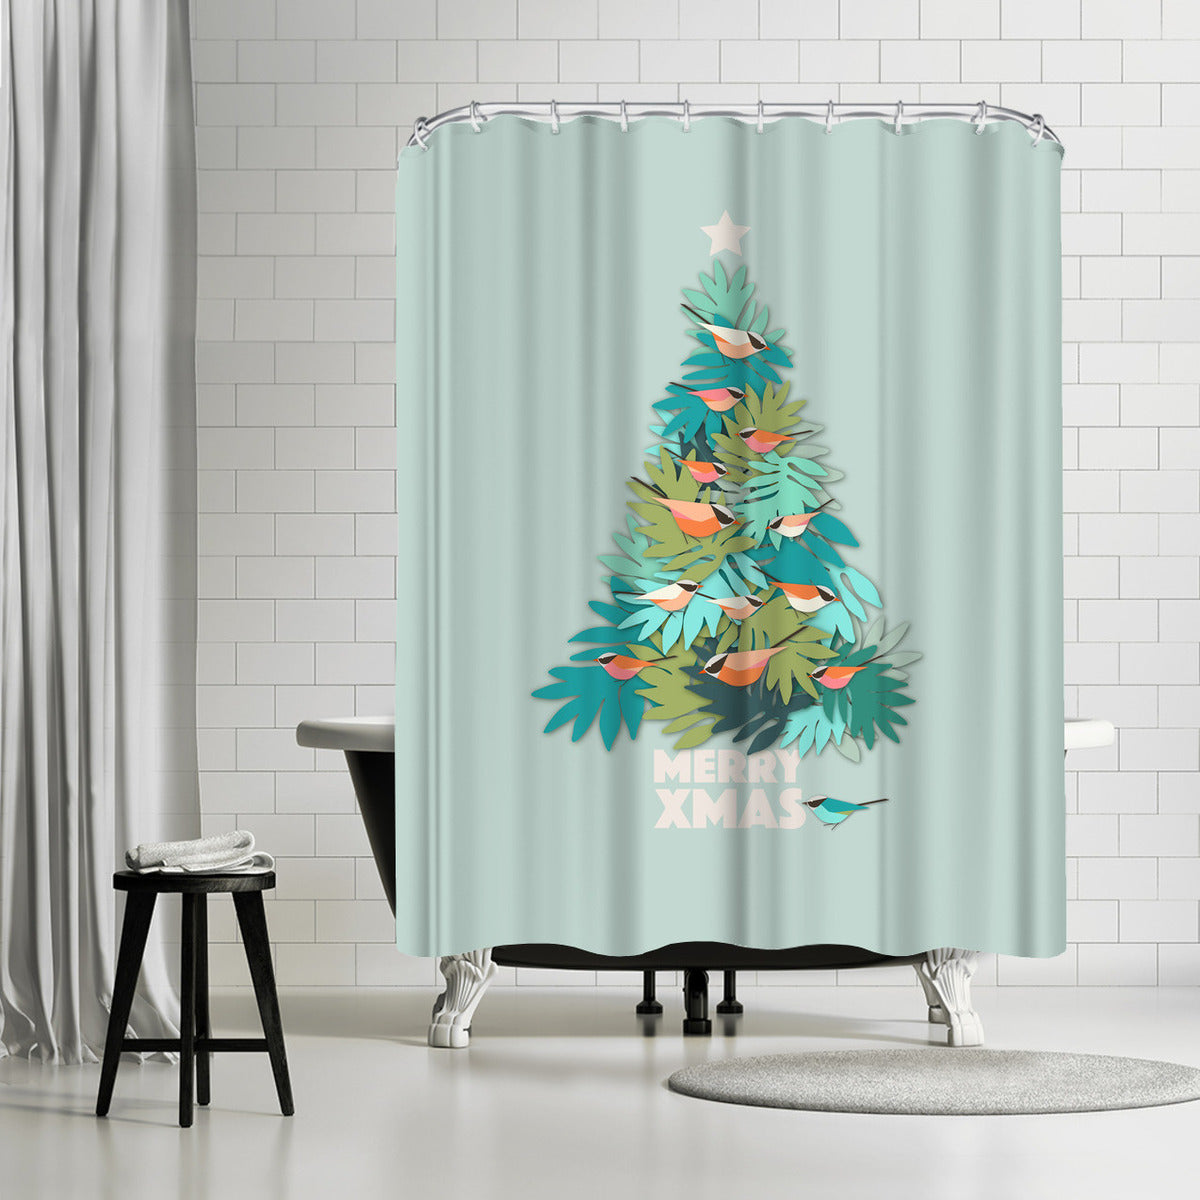 Tropical Xmas by Susana Paz Shower Curtain - Shower Curtain - Americanflat